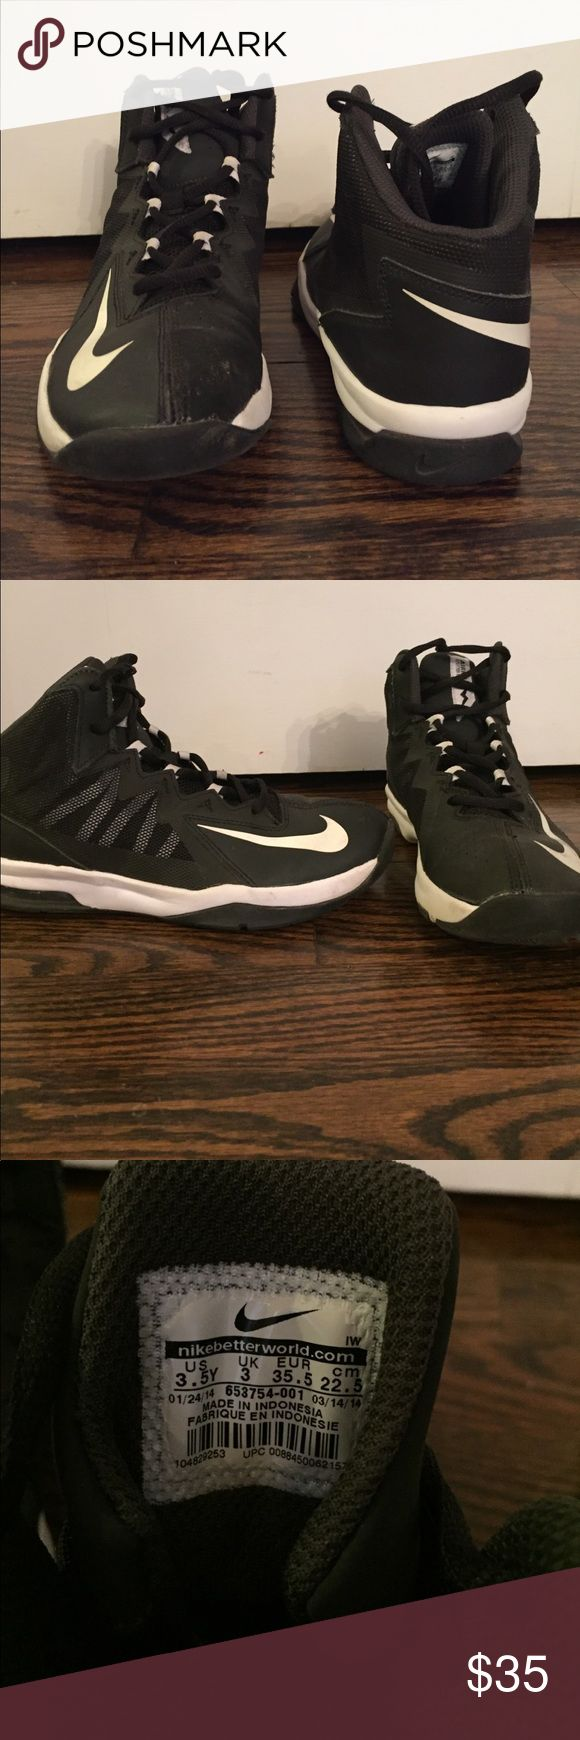 Nike Air Max Stutter Step 2 🏀 Nike Air Max Stutter Step 2 Boys size : 3.5 Worn a few times.  Great shows to make that little man look sharp. Great for basketball! 🏀 Nike Shoes Sneakers